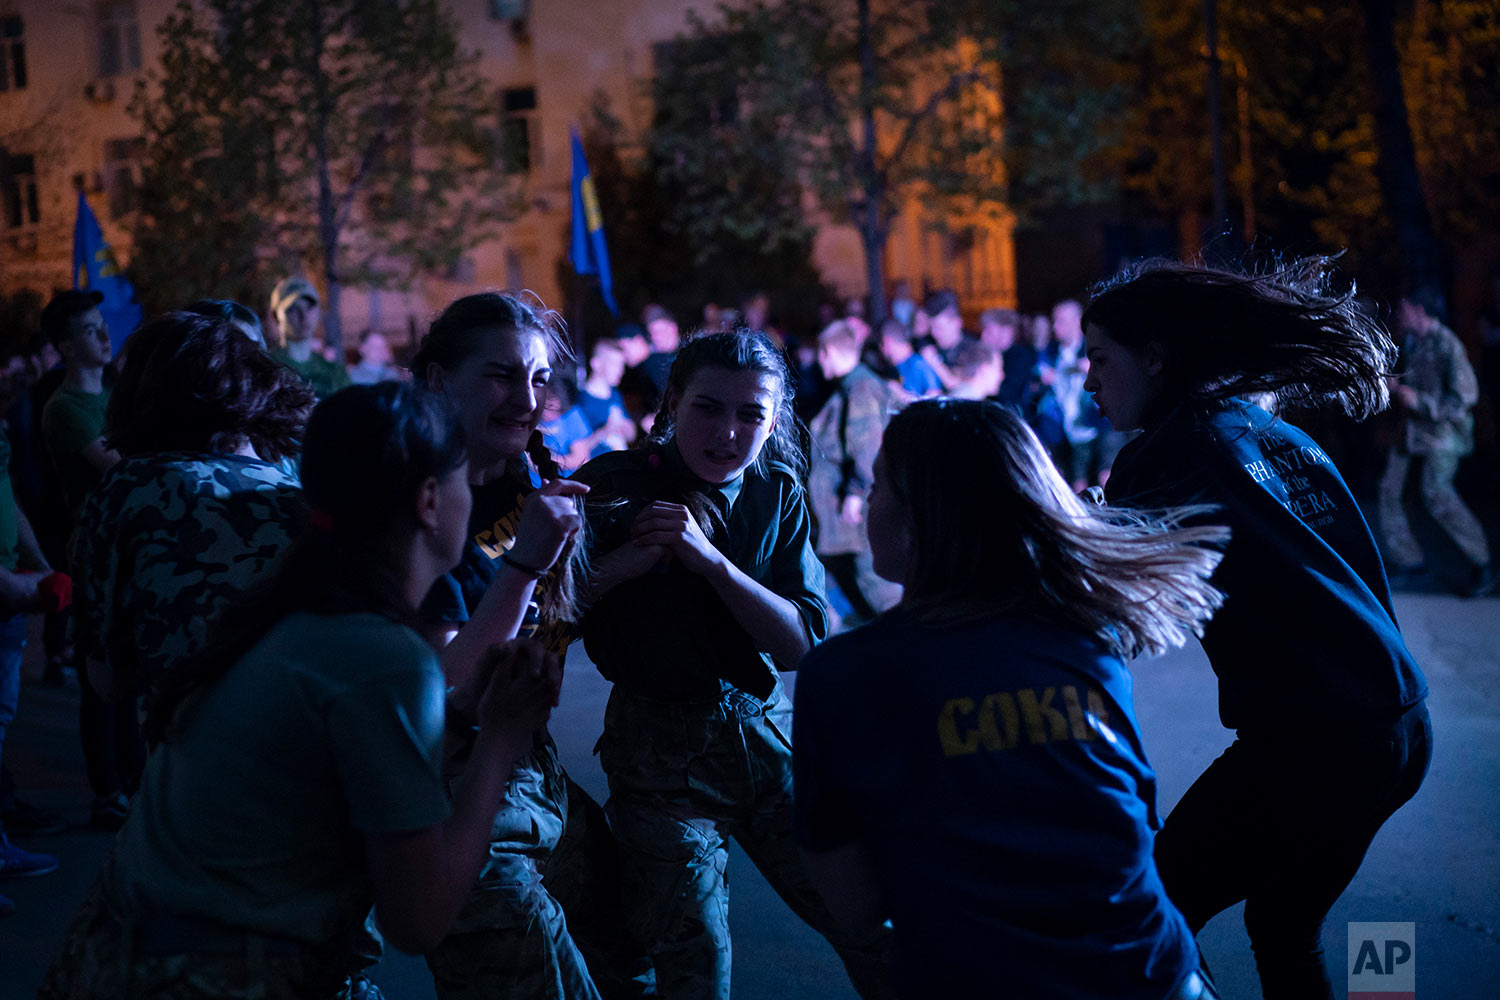 Members of the nationalist group Sokil, the youth wing of the Svoboda party, bump into each other during a concert in Kiev, Ukraine, April 21, 2018. (AP Photo/Felipe Dana)